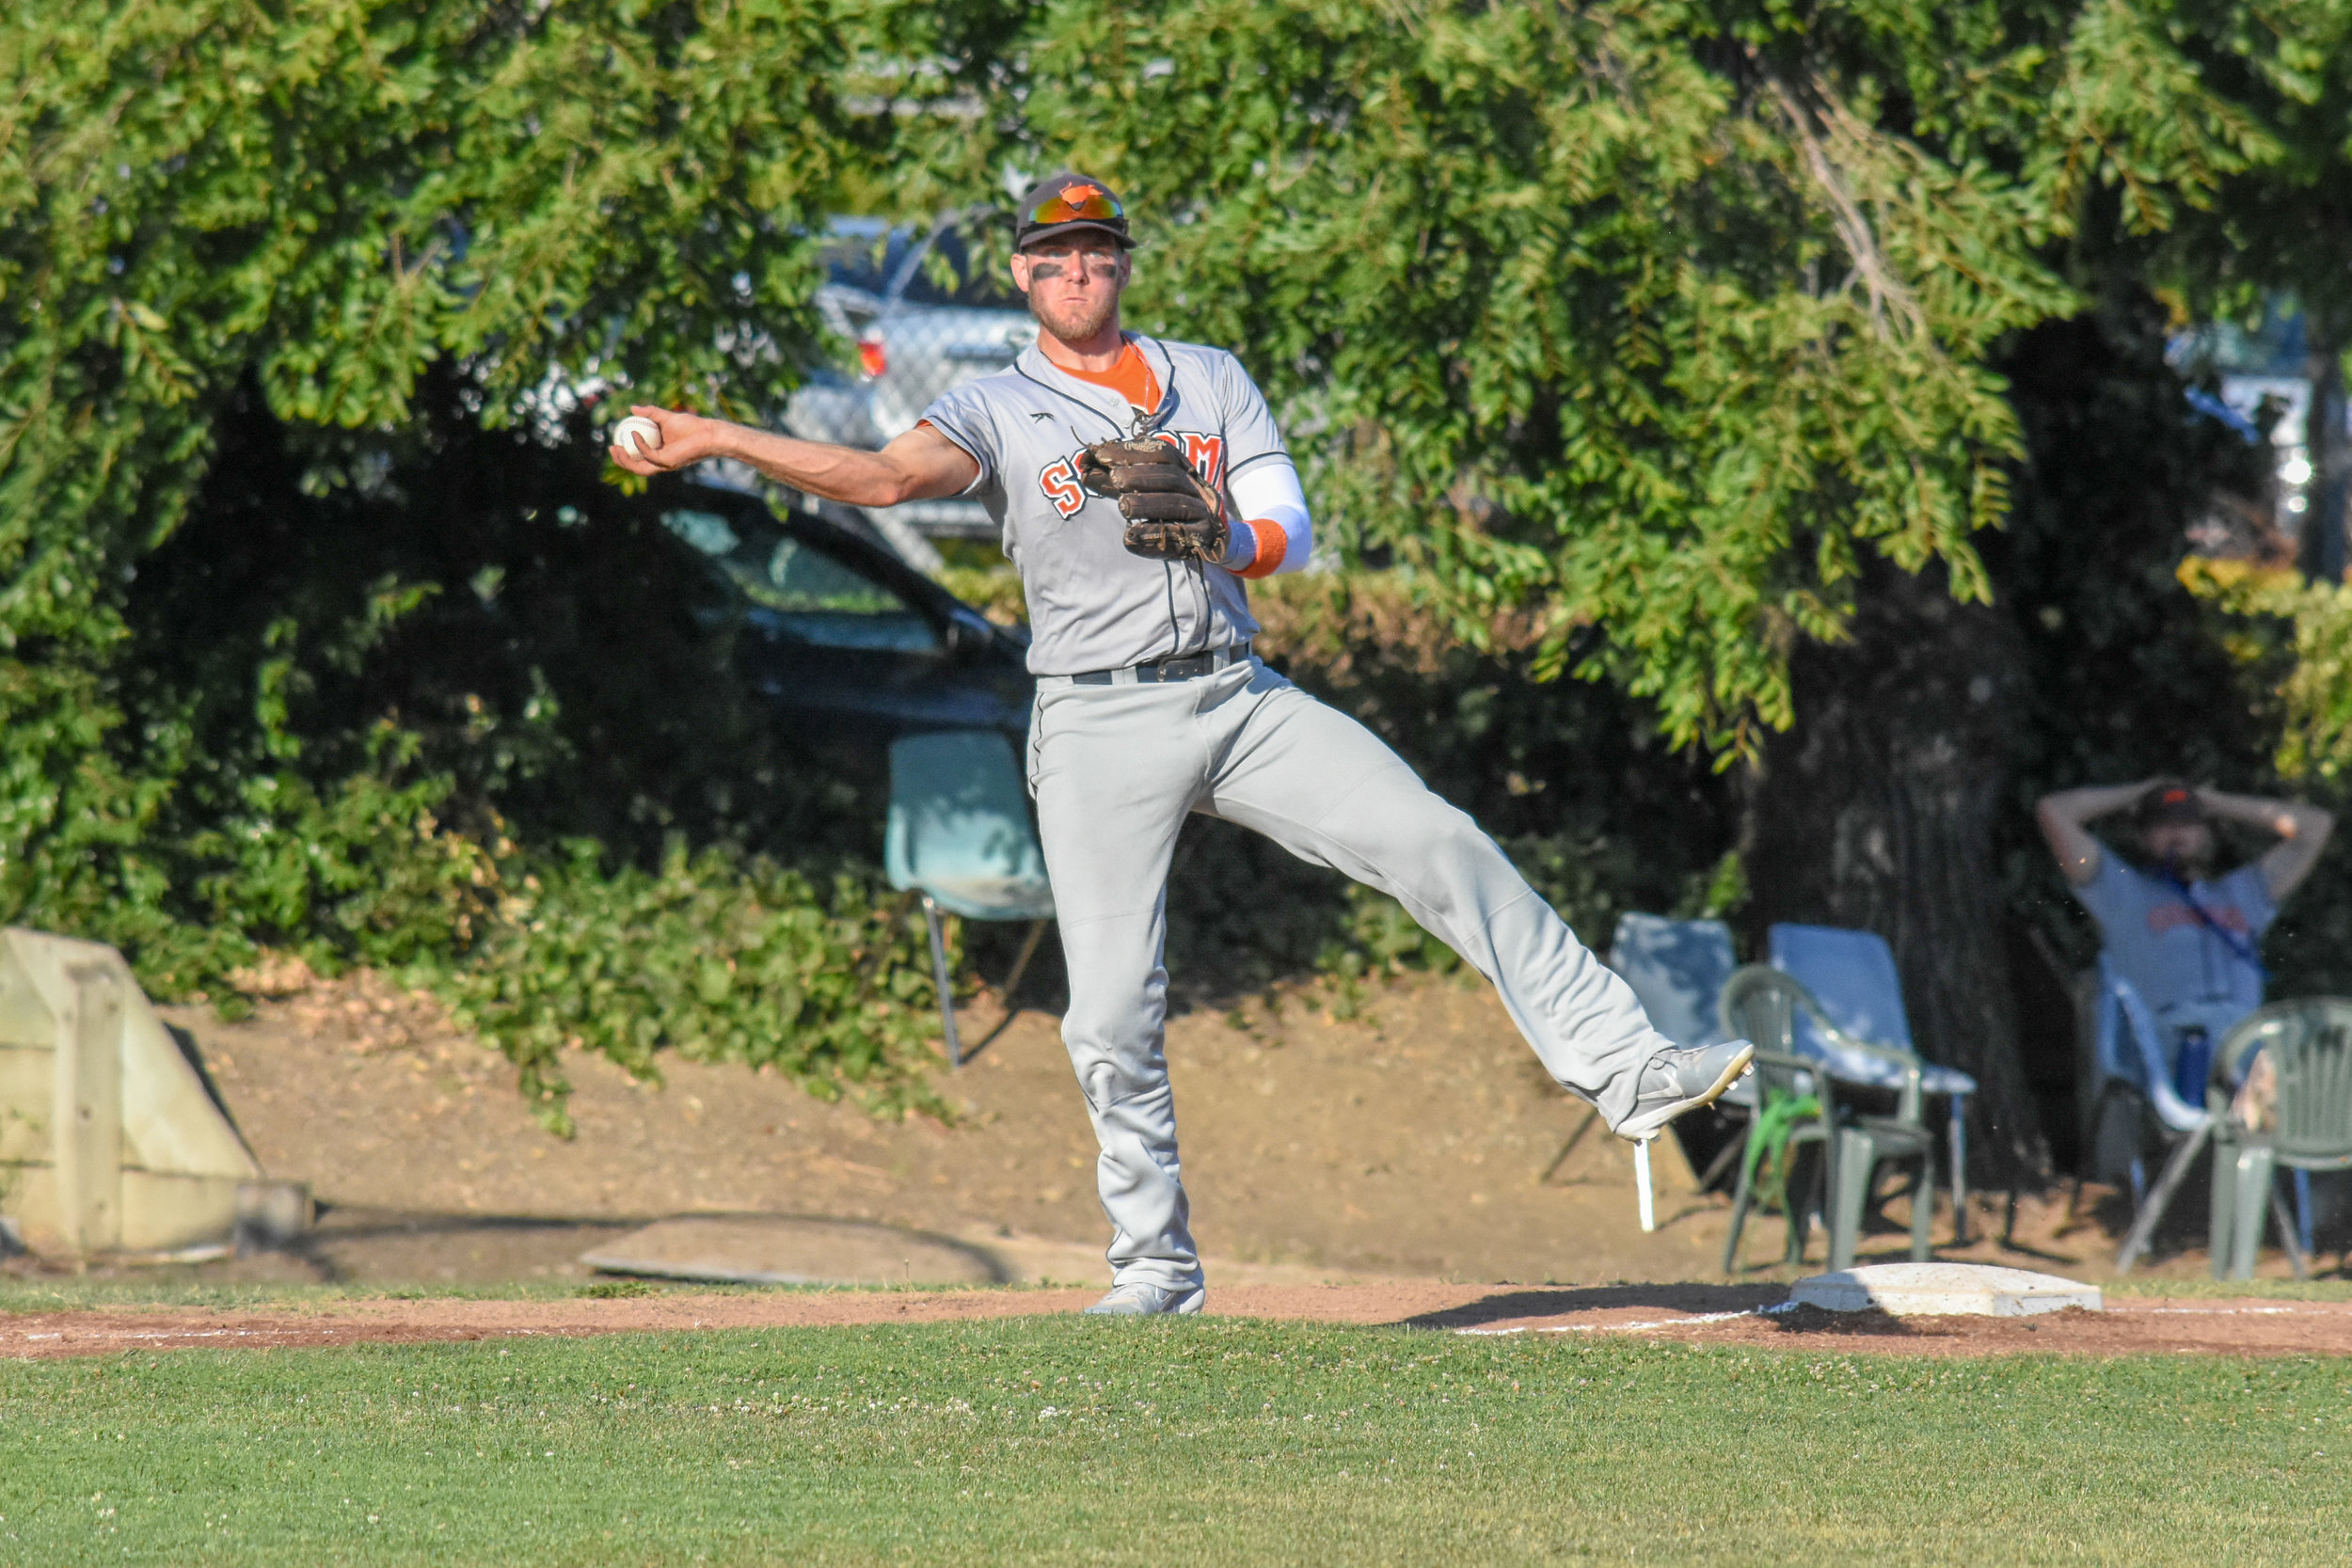 Kevin Farley makes a throw from third base in the Sonoma Stompers game against the San Rafael Pacifics, August 25, 2018 in San Rafael, Calif.(James W. Toy III / Sonoma Stompers)